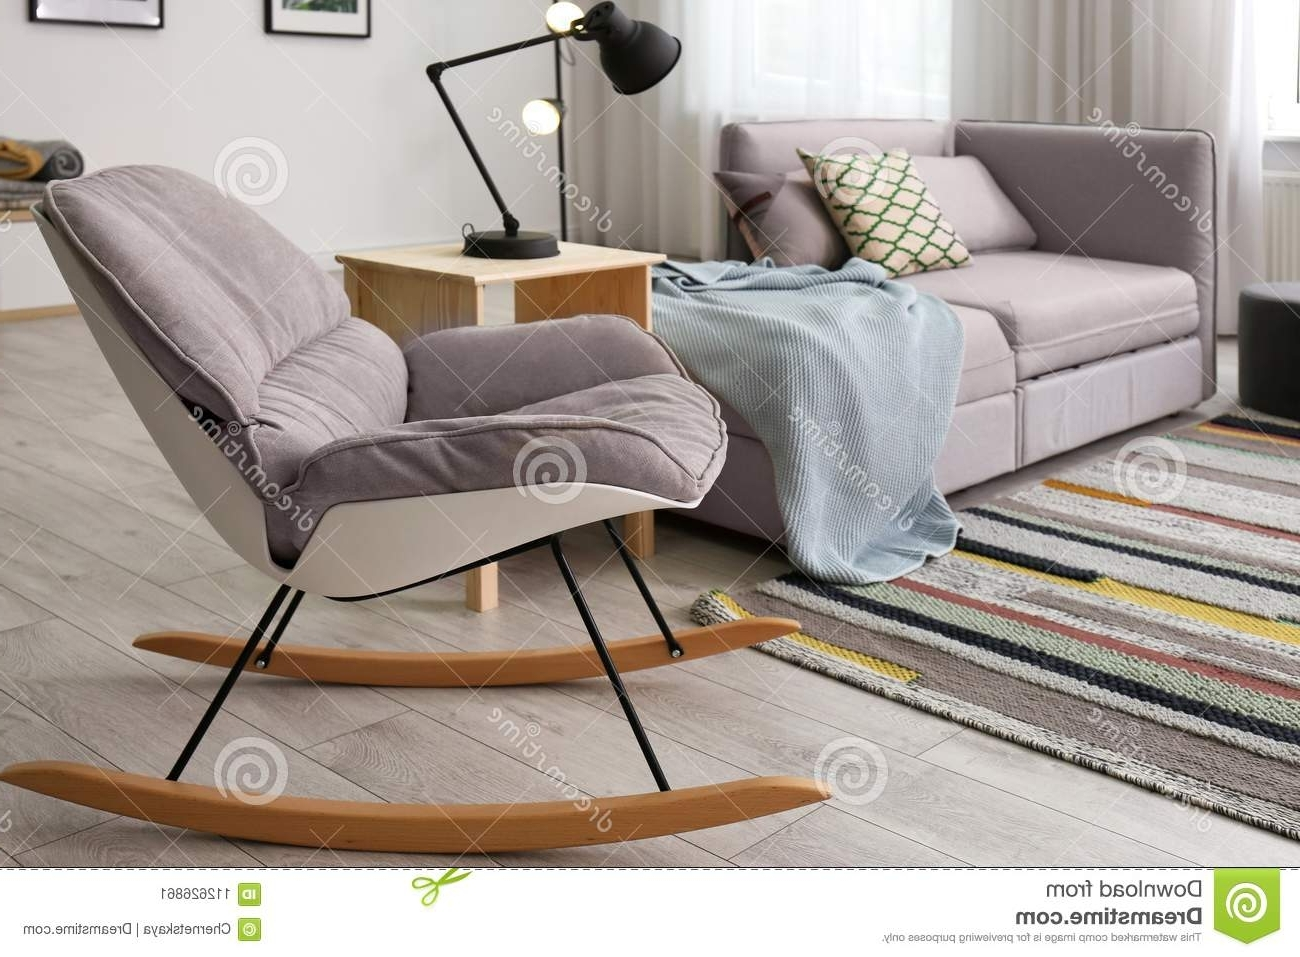 2018 Stylish Living Room Interior With Rocking Chair Stock Image – Image With Regard To Rocking Chairs For Living Room (View 11 of 15)